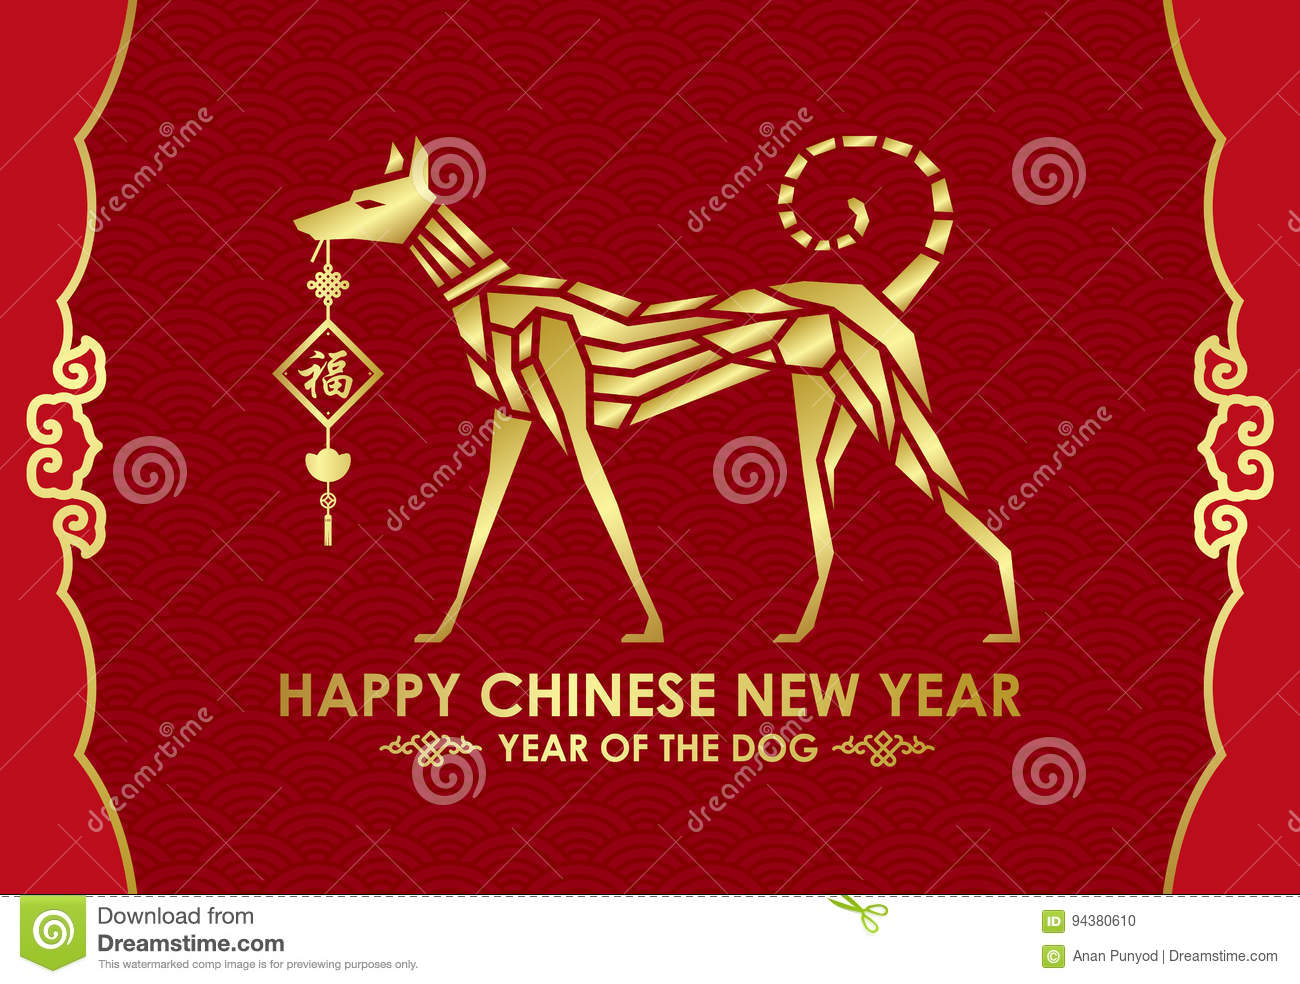 happy chinese new year 2018 card with gold dog abstract on red background vector design chinese